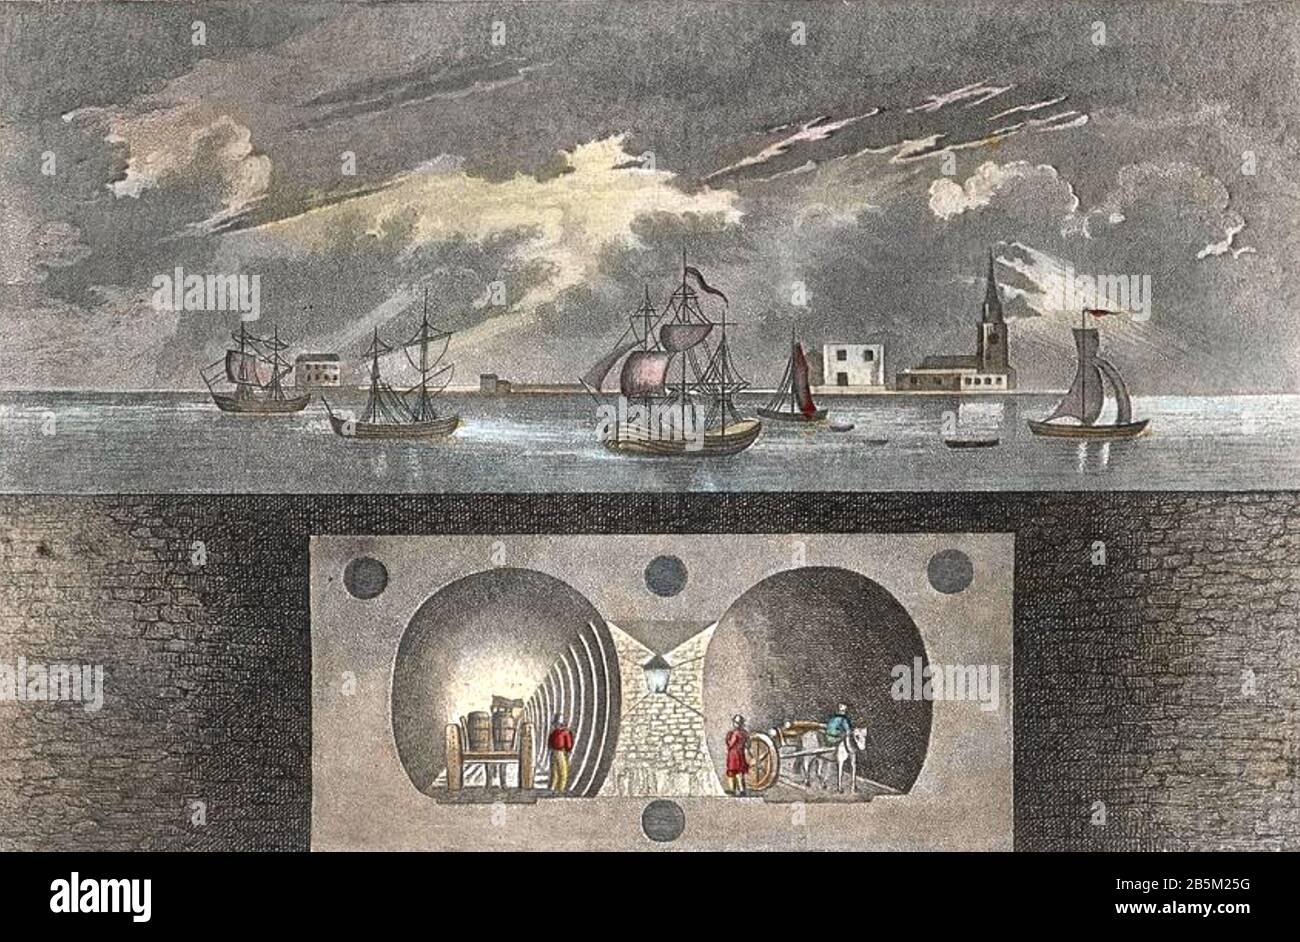 THAMES TUNNEL Cross section of the tunnel connecting Rotherhithe and Wapping built between 1825 and 1843 by Marc Isambard Brunel and his son Isambard Kingdom Brunel. Stock Photo